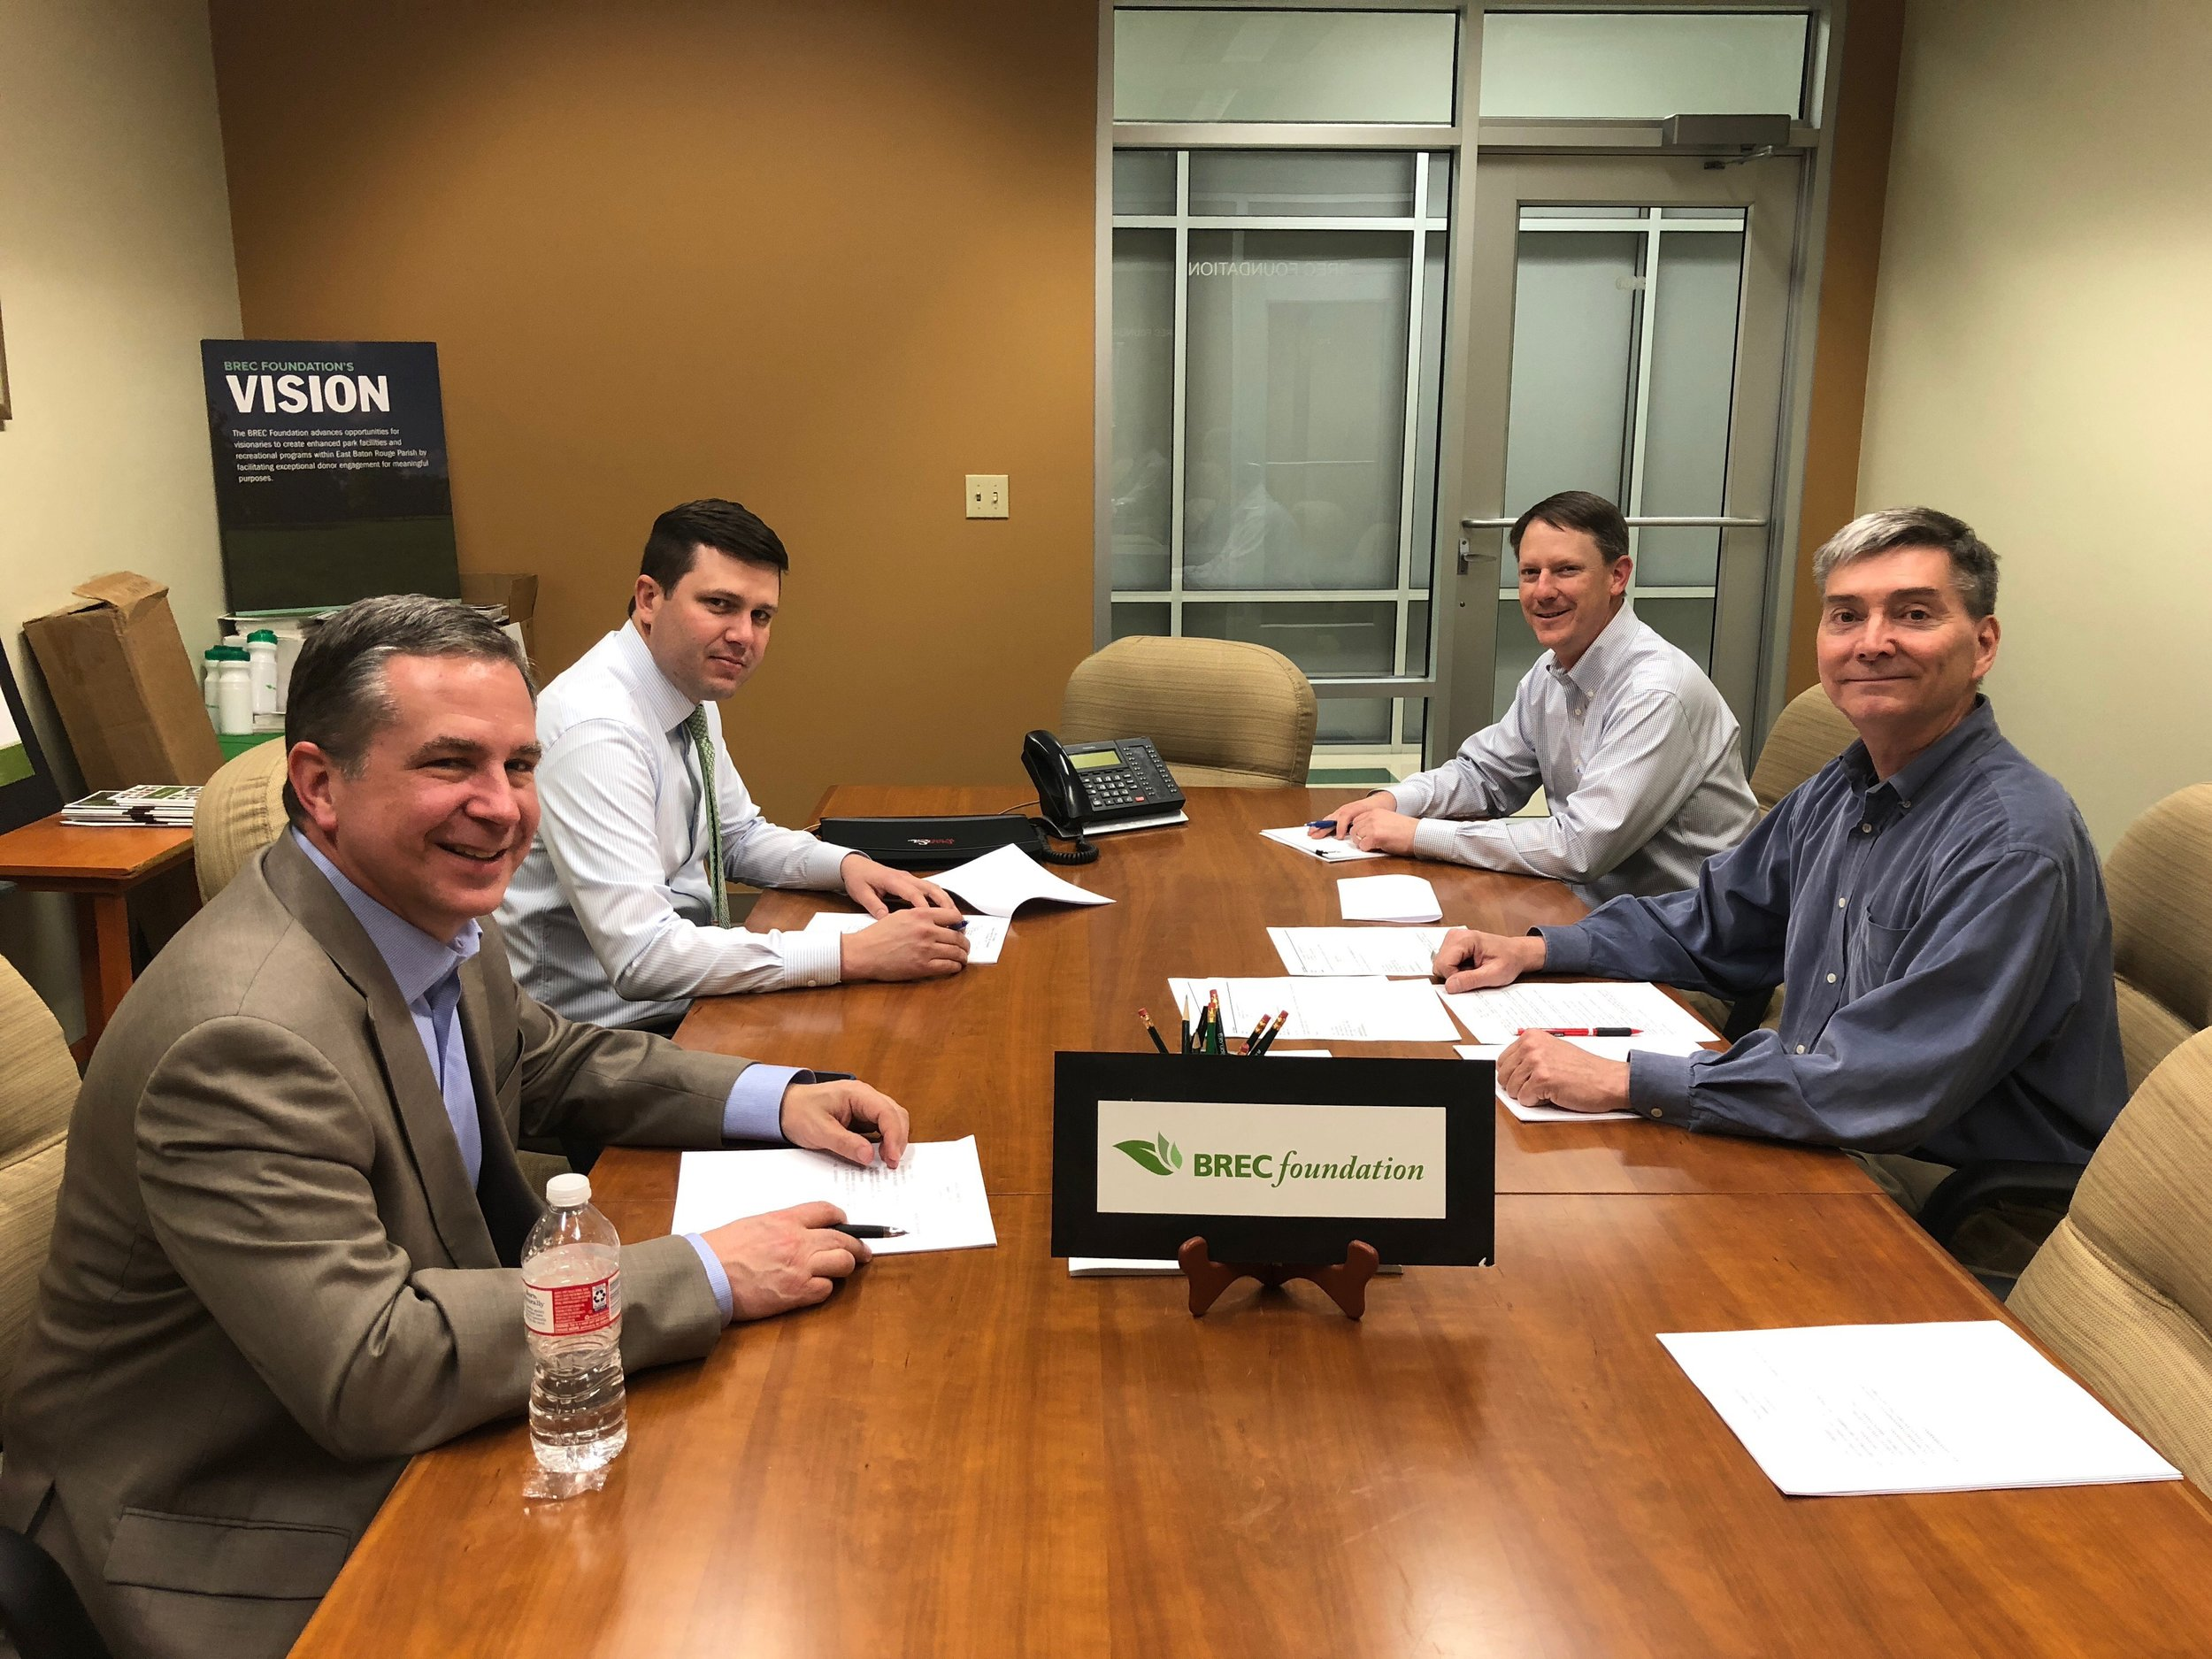 """Our Foundation Finance Committee met to review 2017 financial statements, discuss 2018 goals, consider proposed policies and make recommendations on the selection of an auditor. Members involved in the meeting included Bobby Varnau, Bryan Camerlinck, Jacob Waguespack, Treasurer Glen LaBorde and Executive Director Carl Stages."""